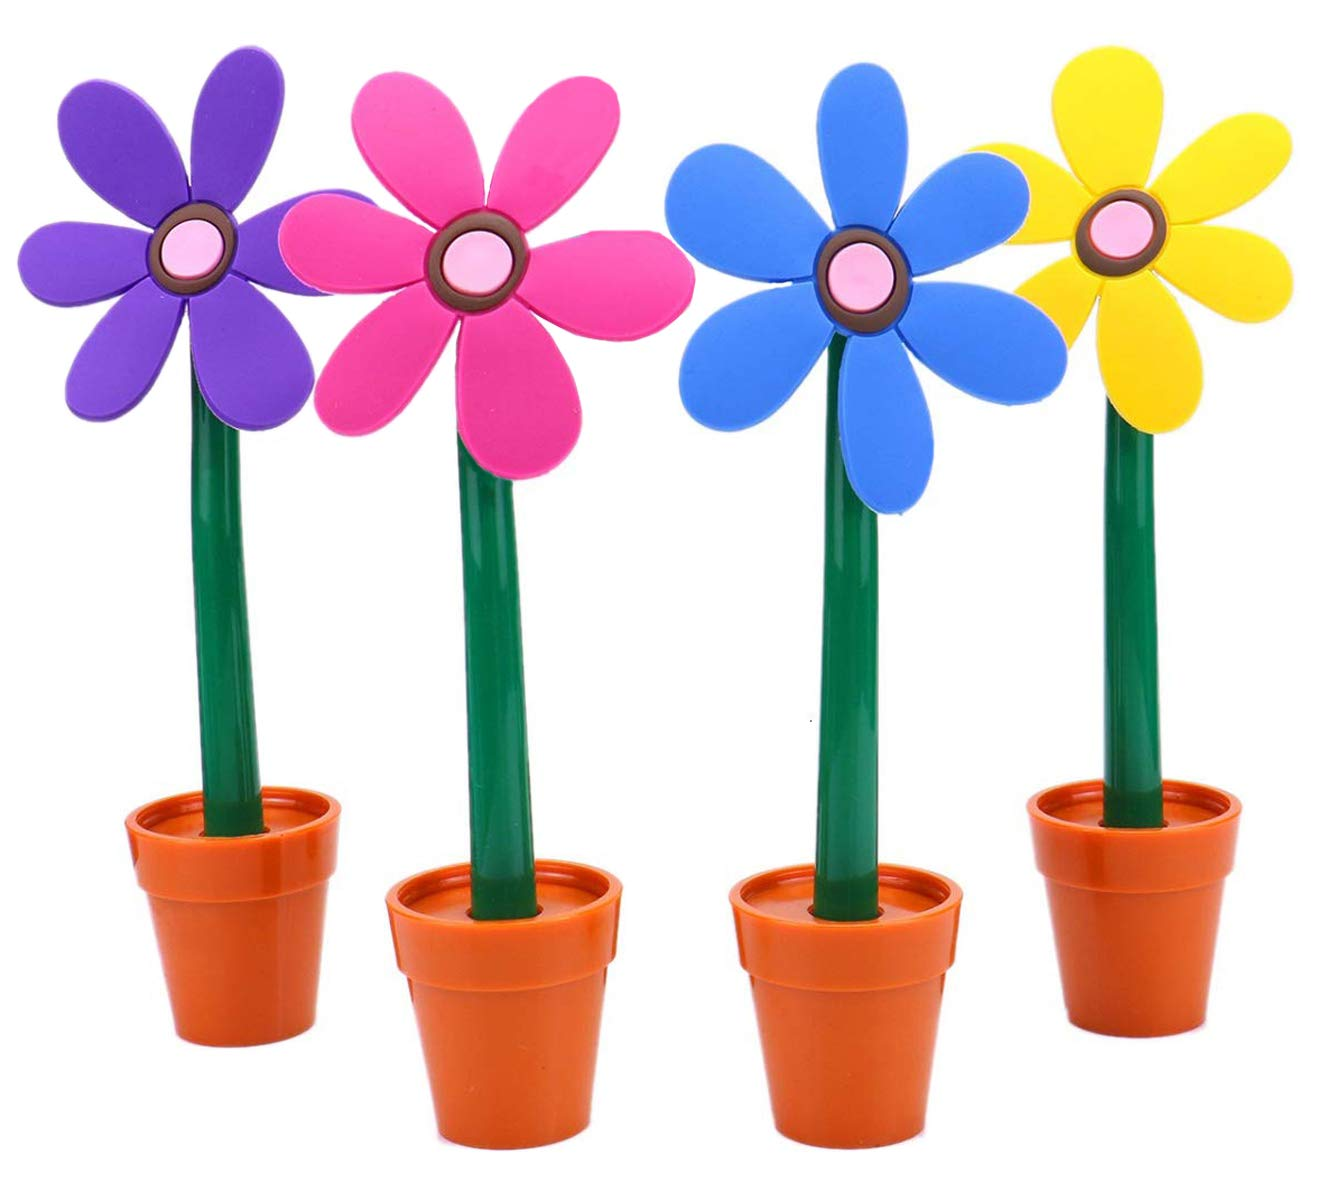 Maydahui 4PCS Flower Ballpoint Pens with Plant Pot Stand on Desk Set Cute Creative Design Colorful for Student Kids as Gift